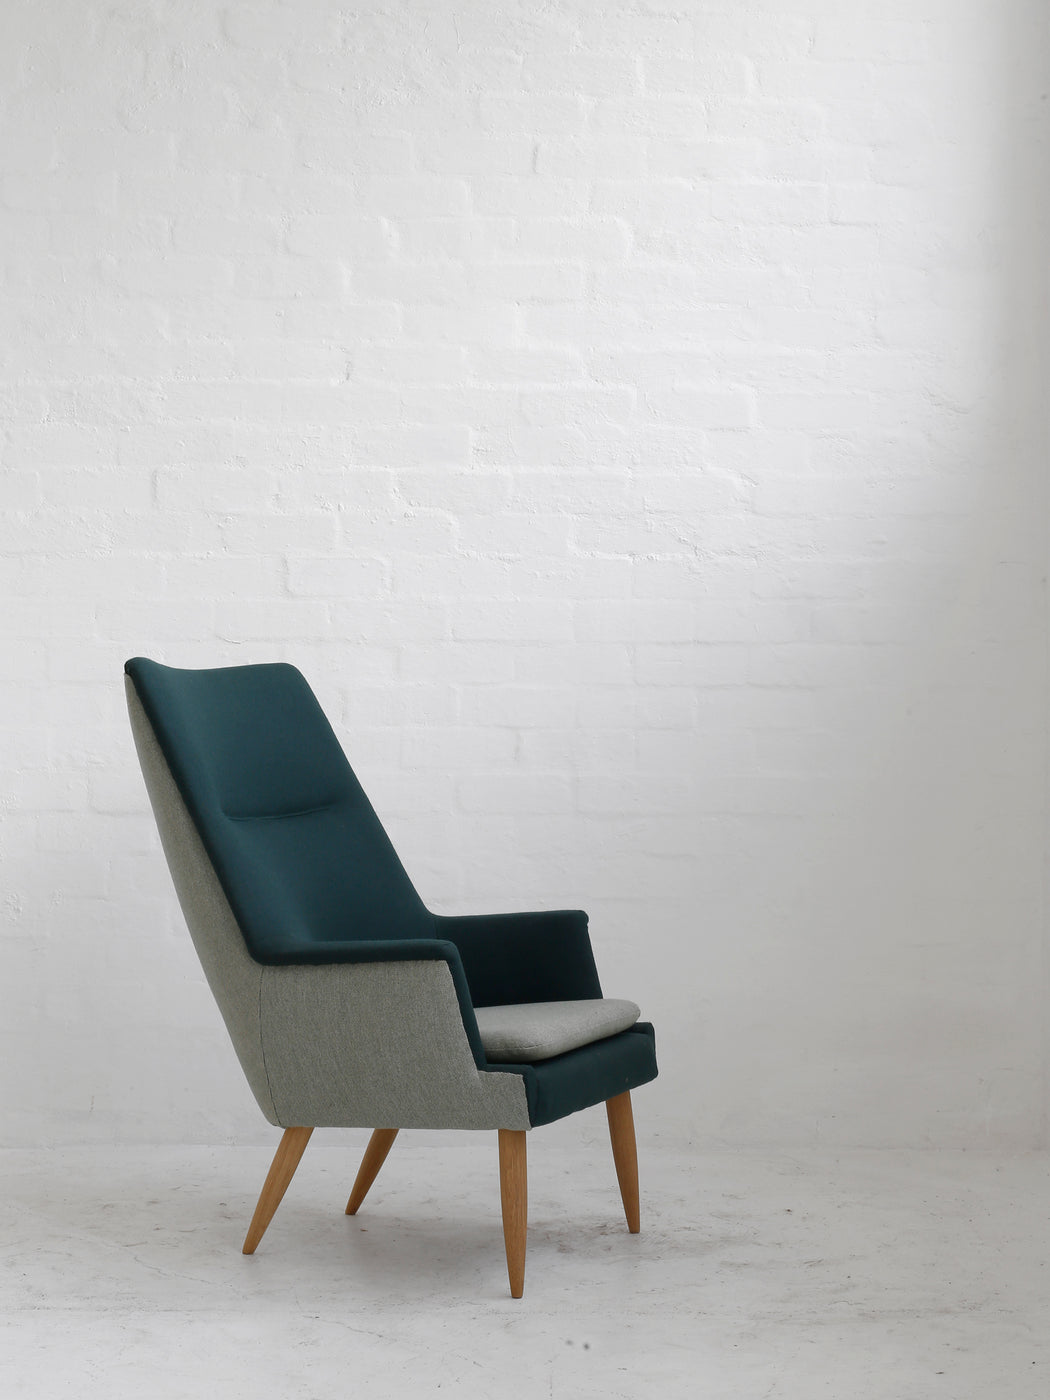 Danish High-Back Chair